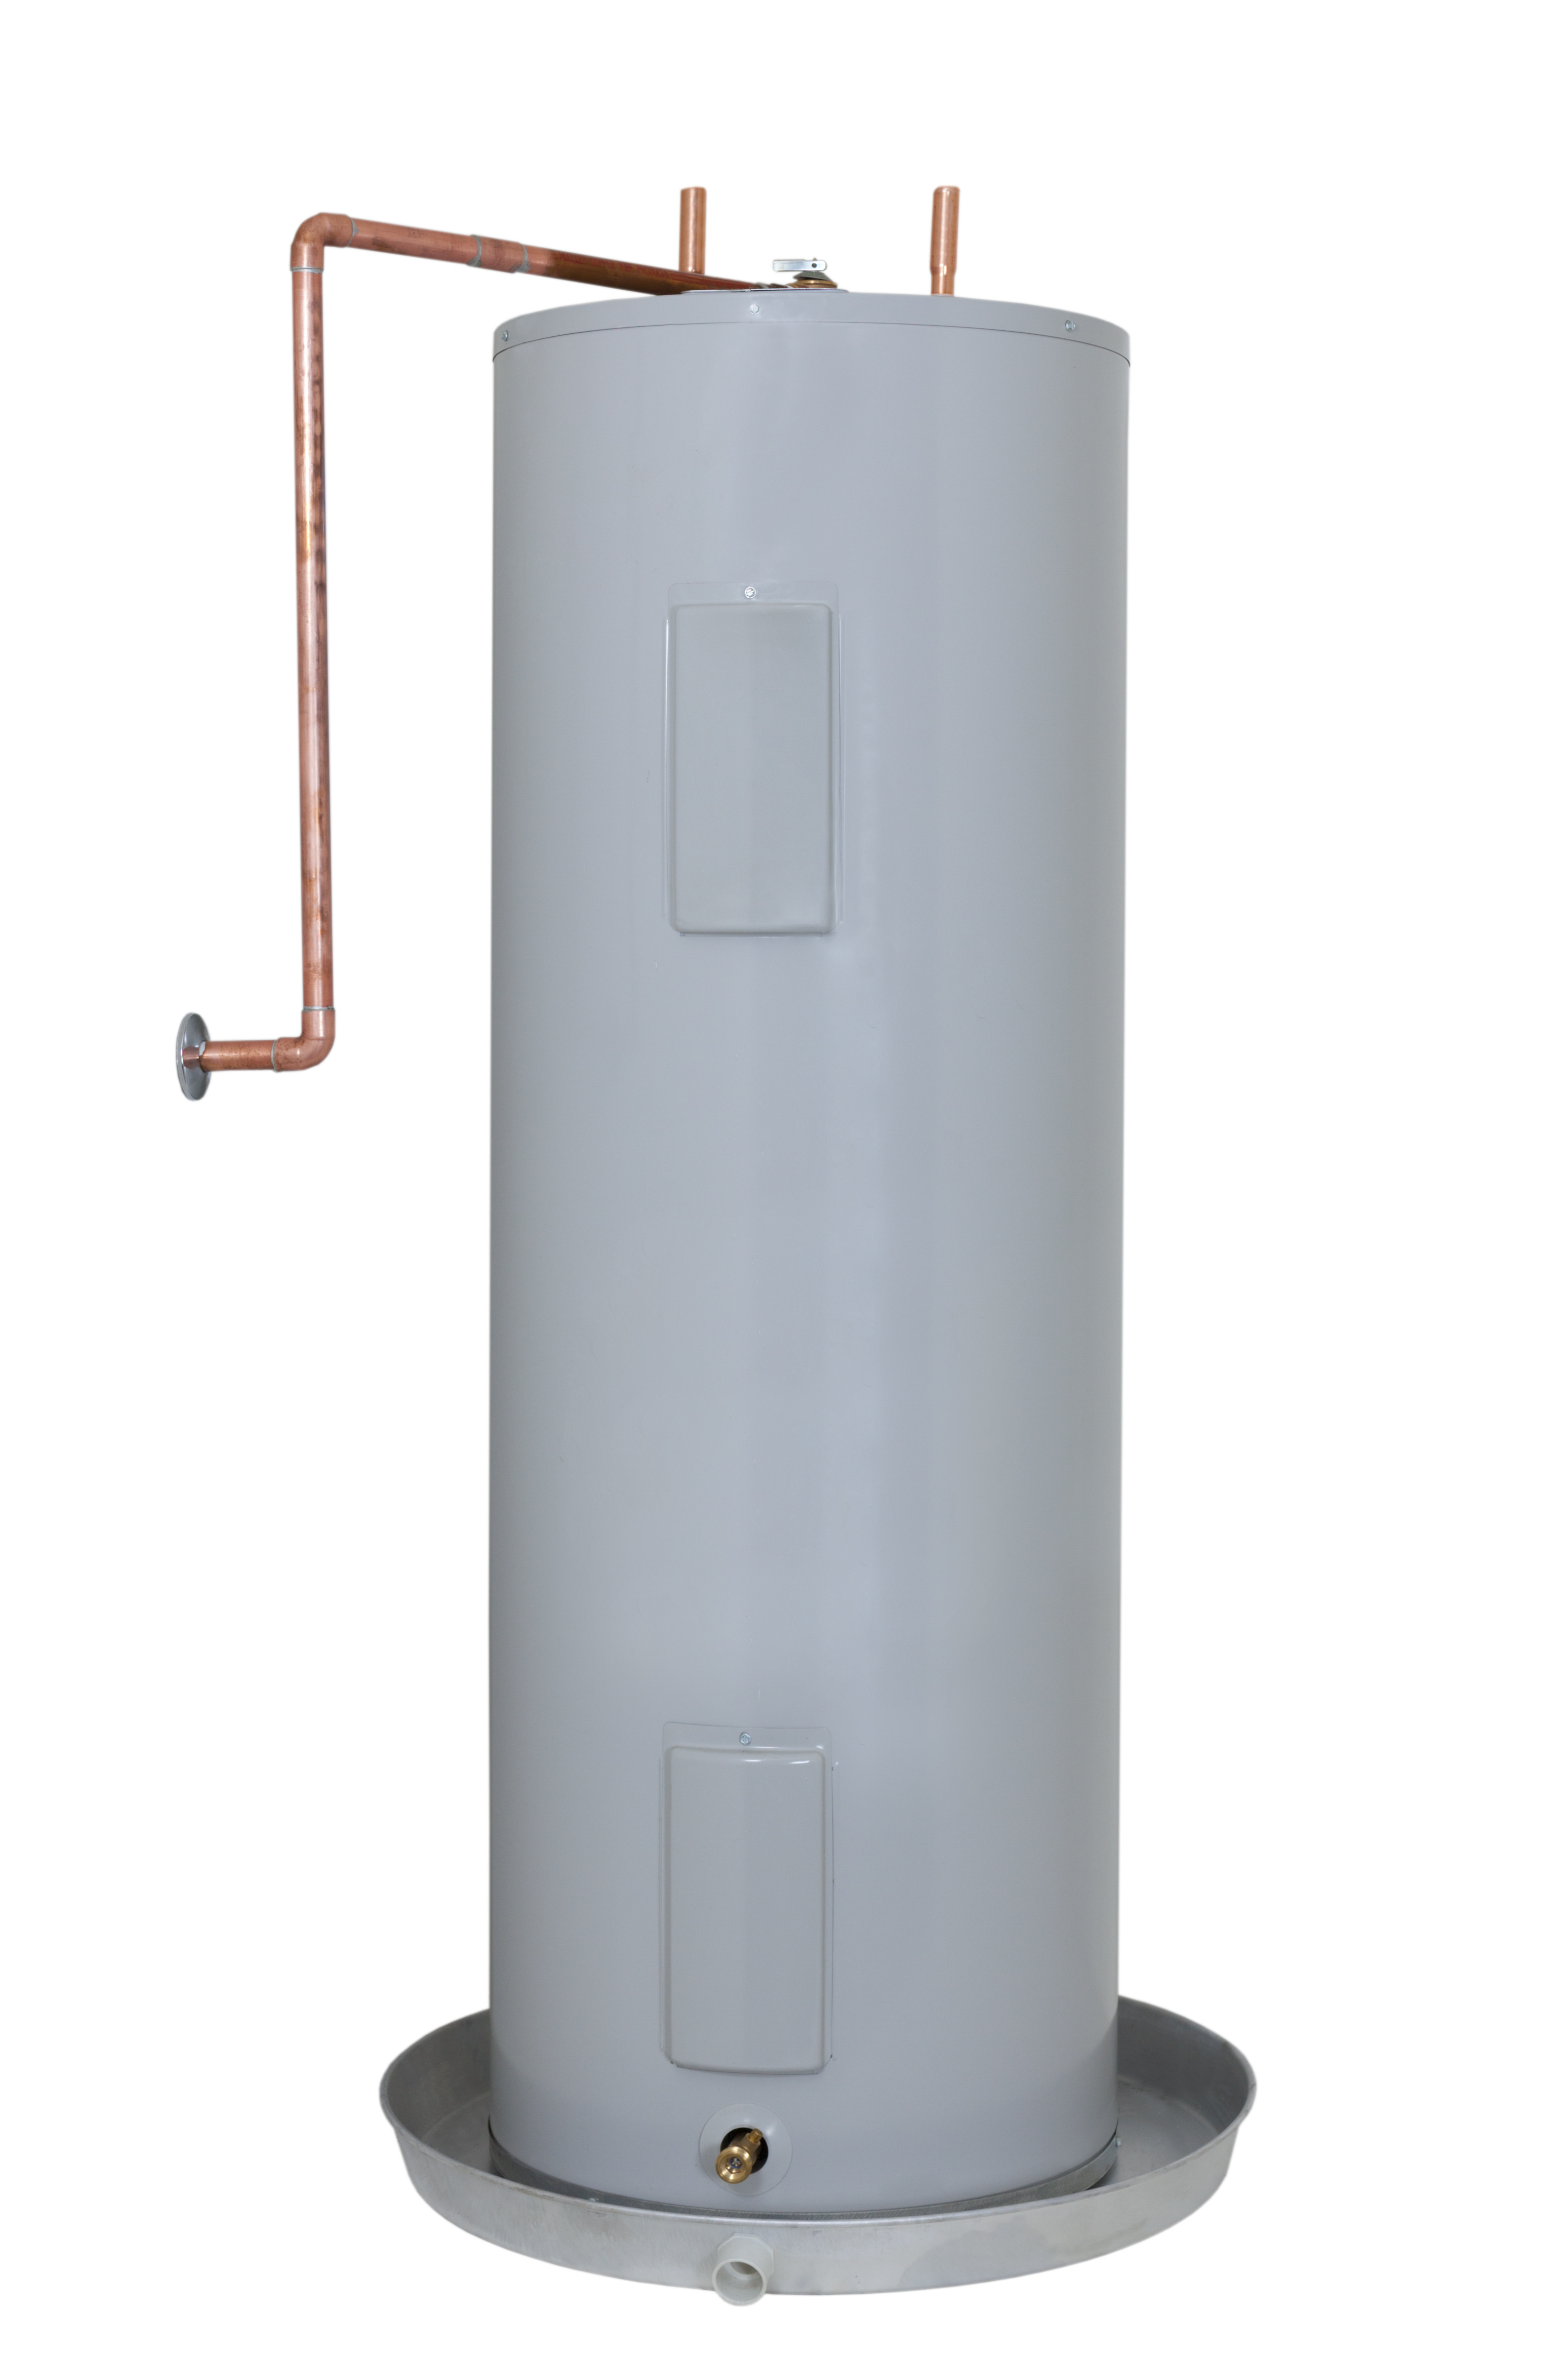 6 Tips to Maintain Your Water Heater